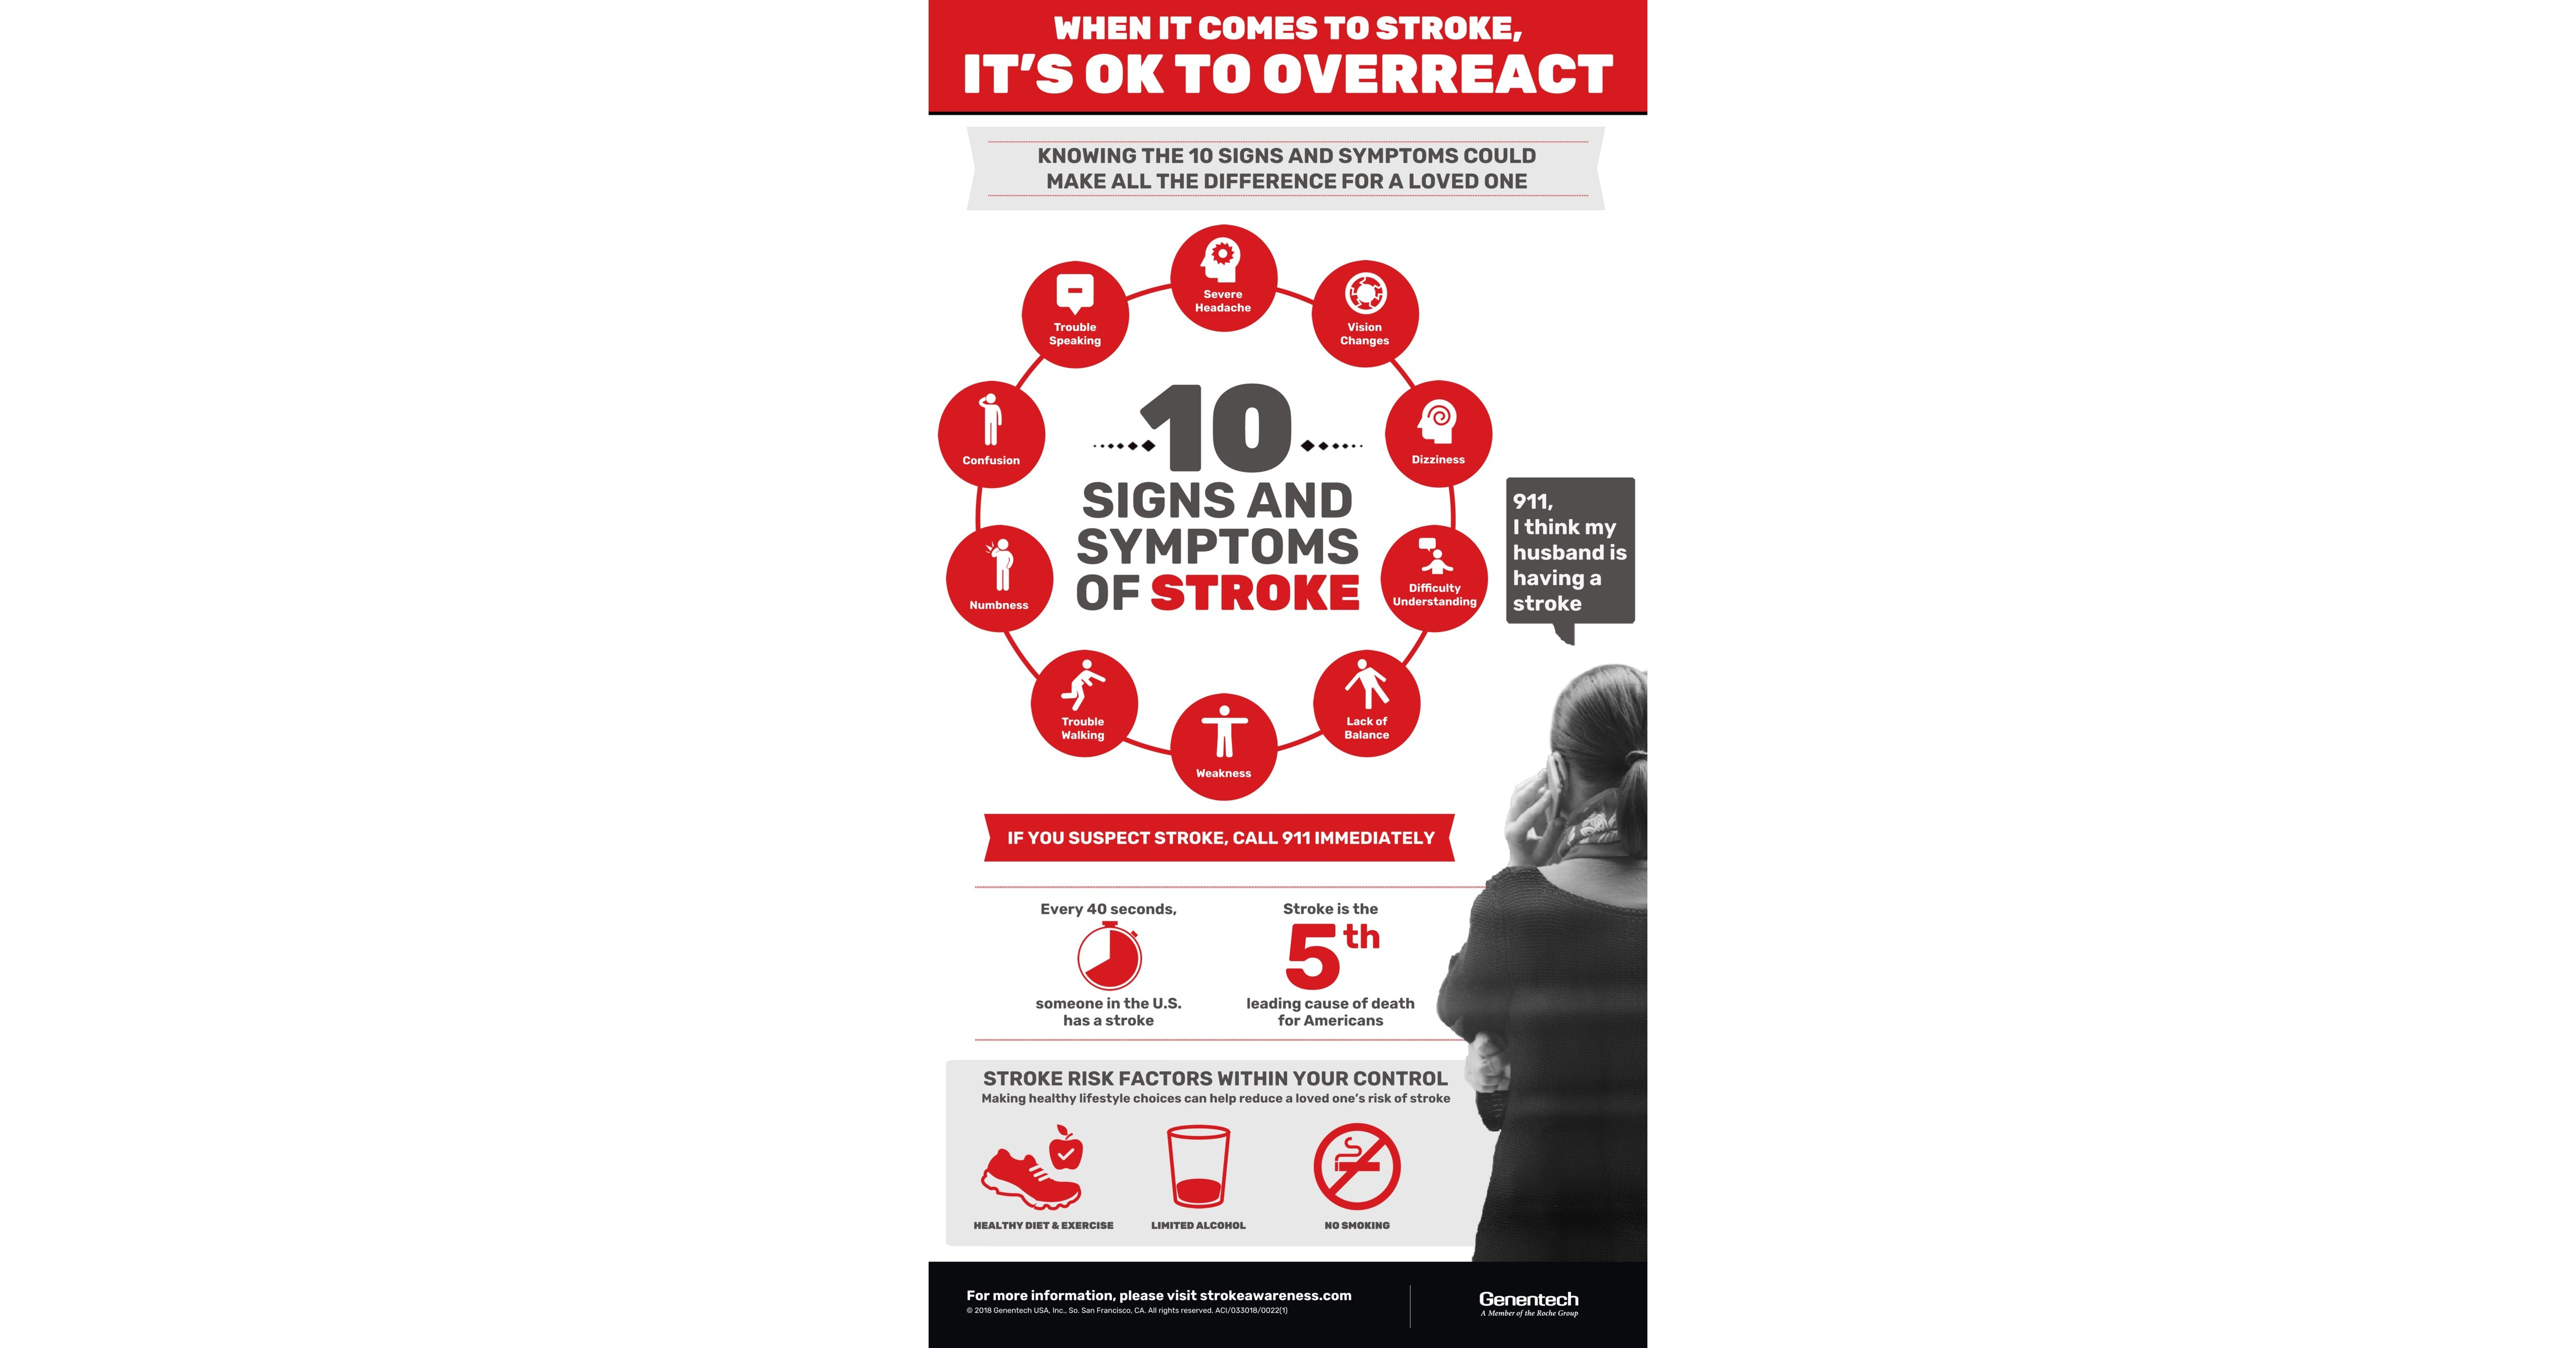 When It Comes to Stroke, It's Ok to Overreact